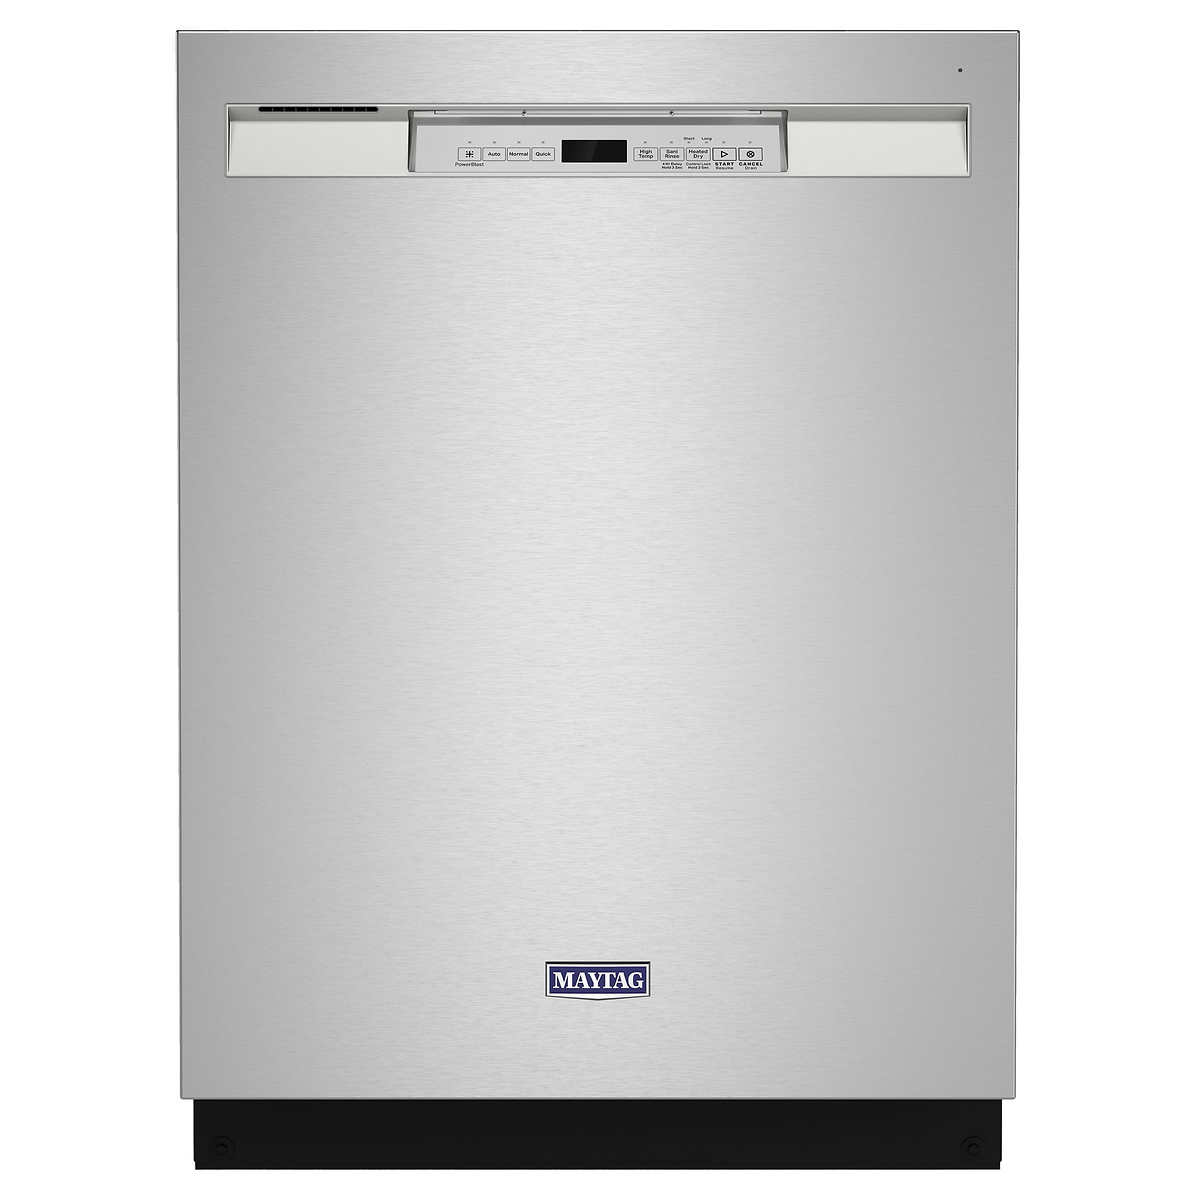 Maytag Front Control Dishwasher In Fingerprint Resistant Stainless Steel With Dual Power Filtration